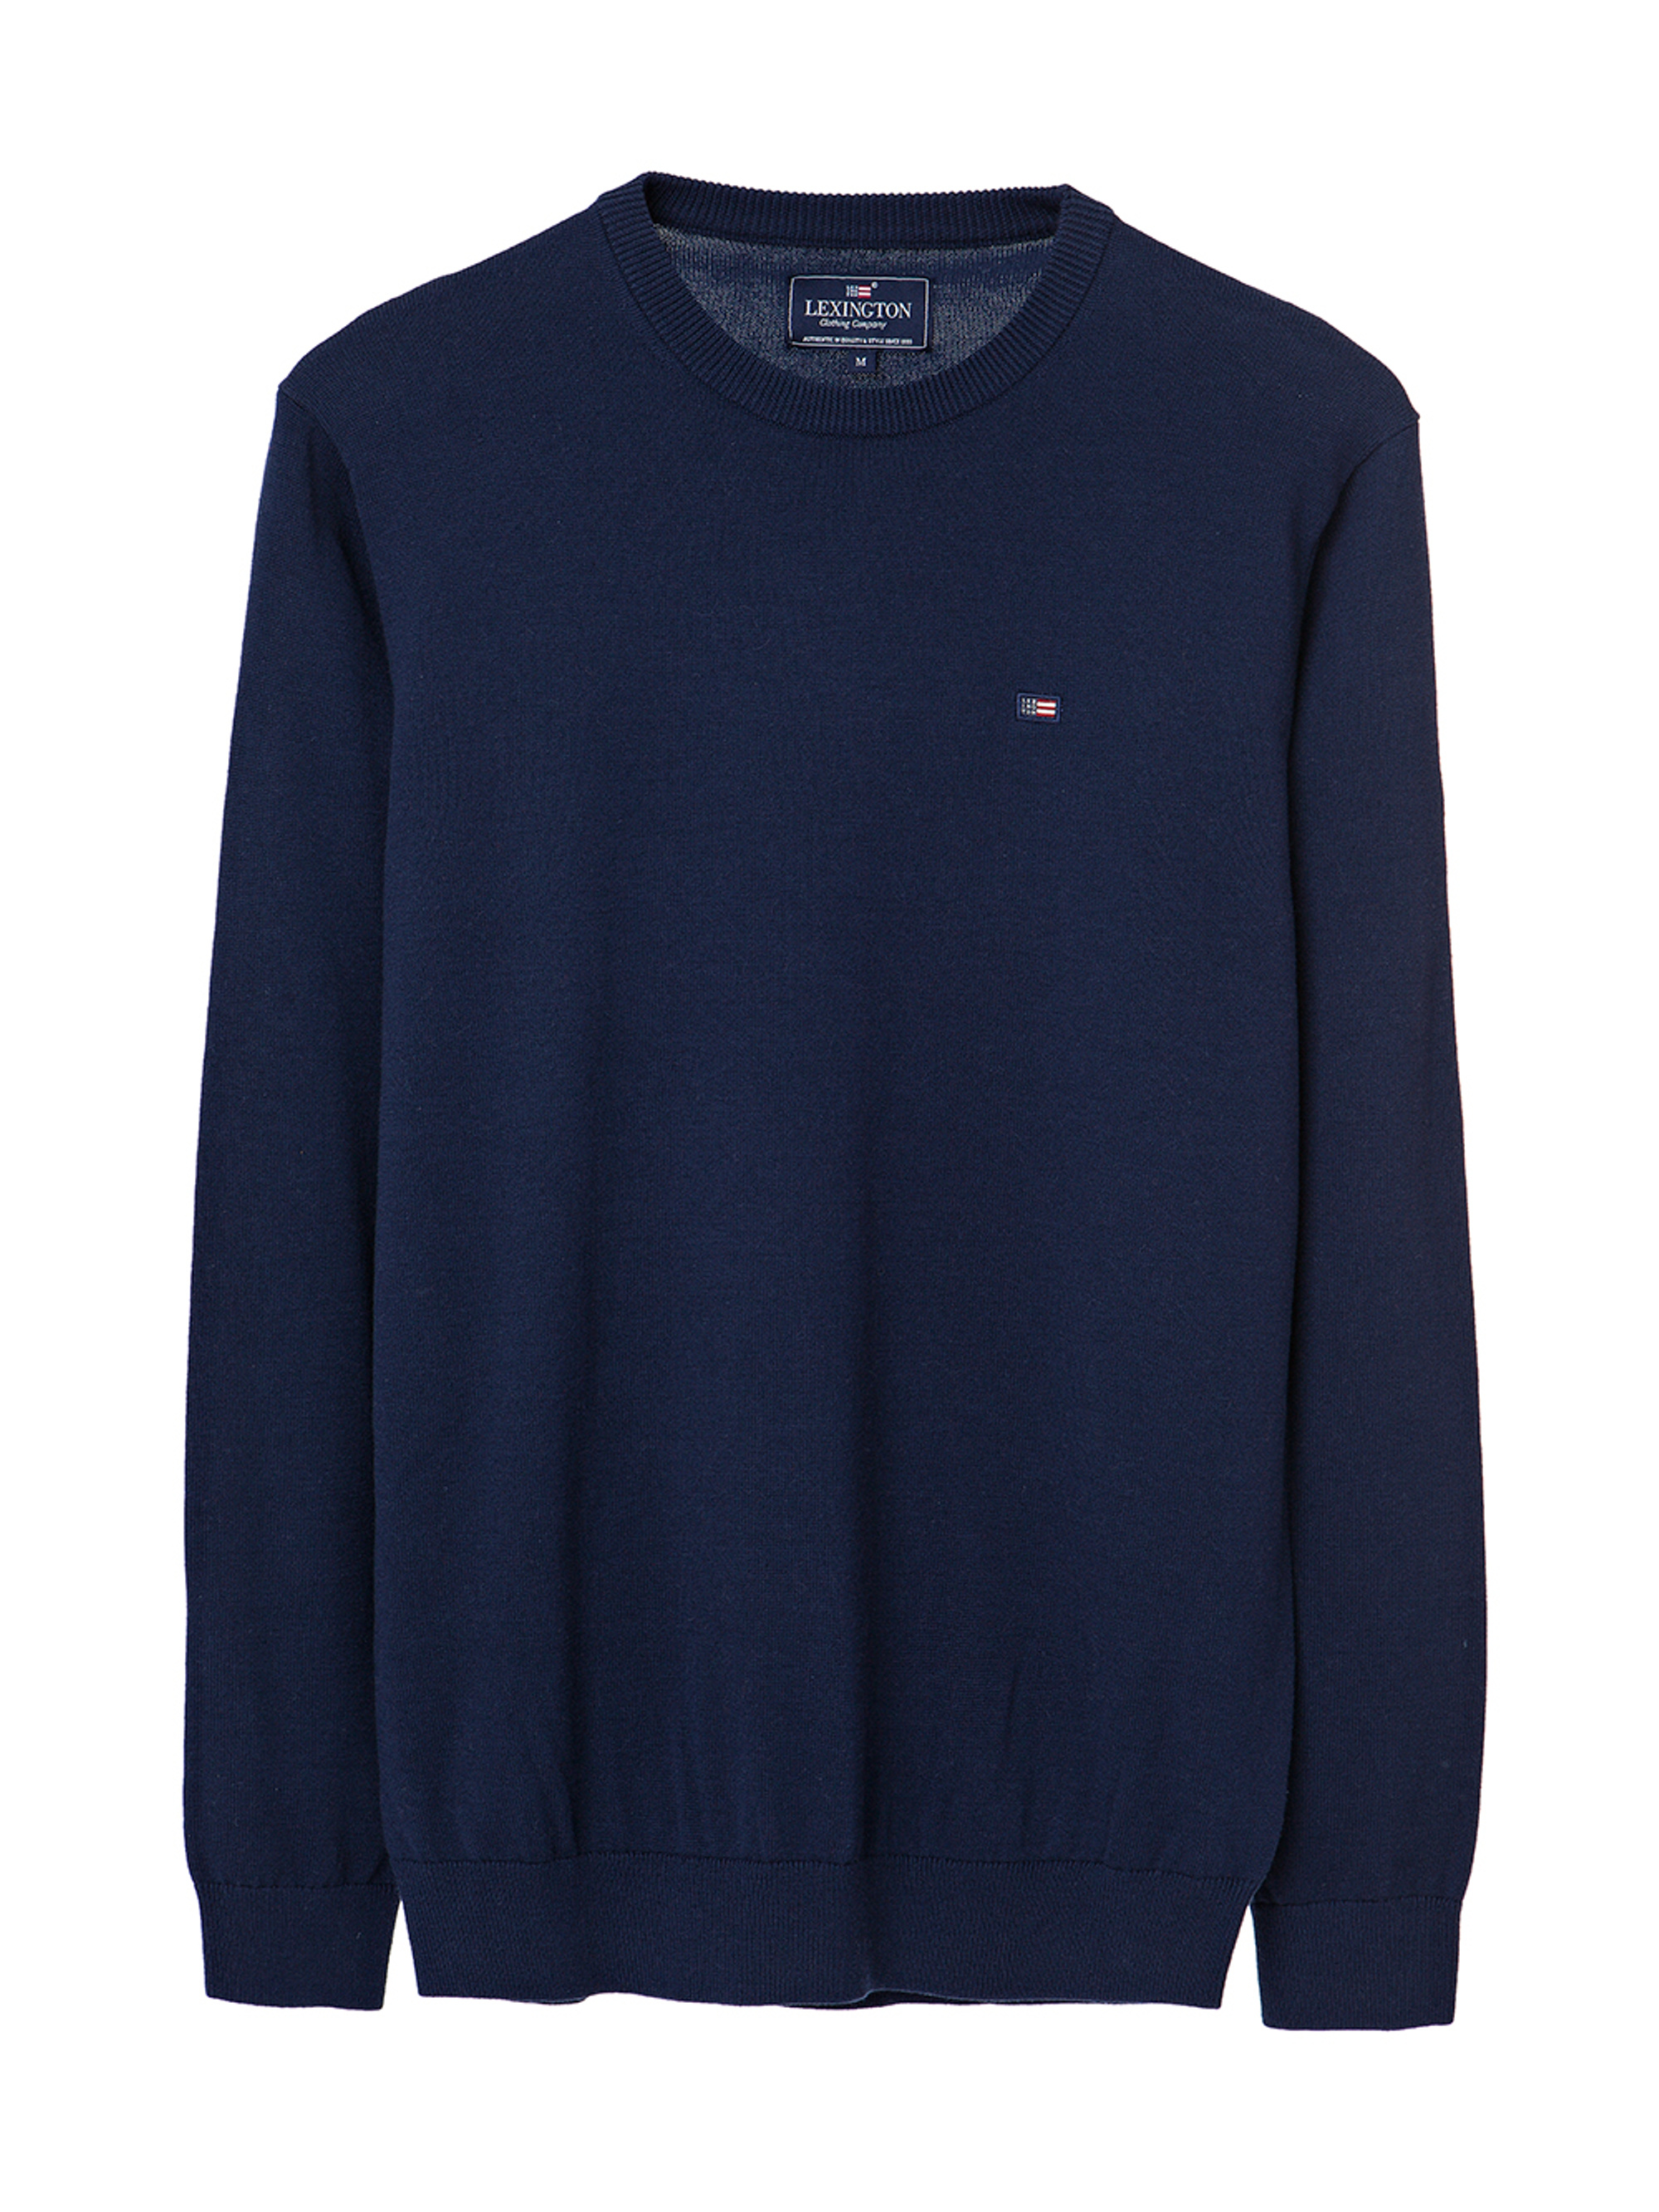 Bradley Crewneck Sweater, Deepest Blue